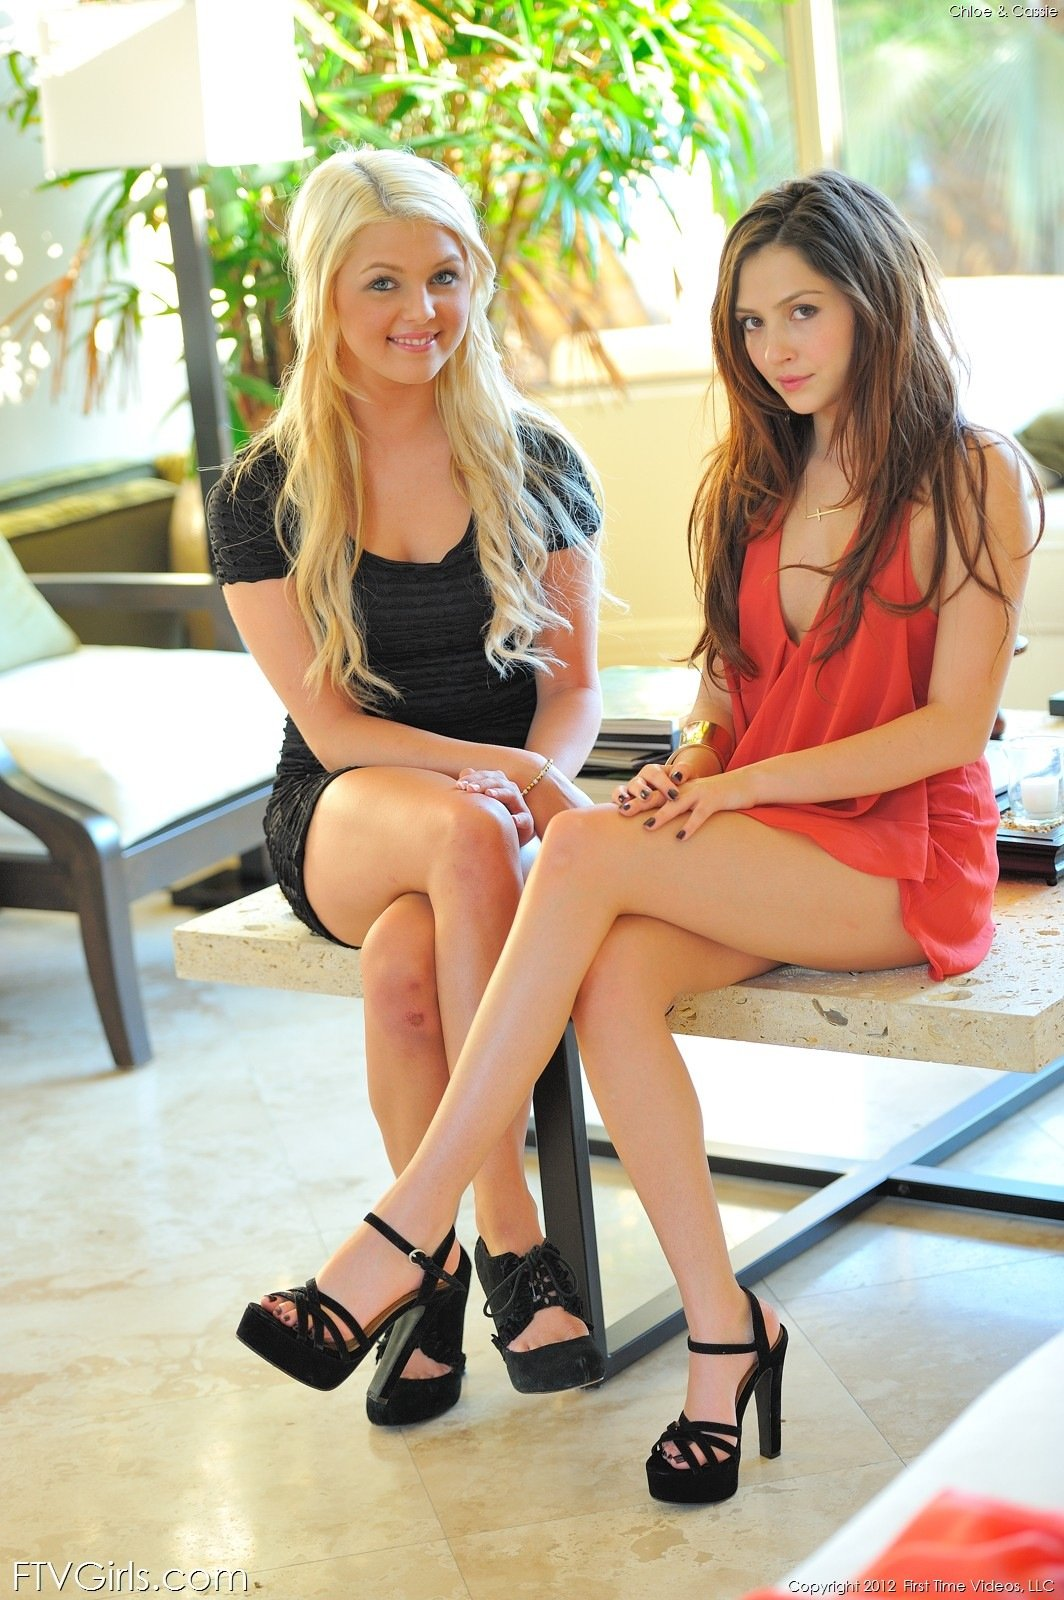 Cassie and Chloe Horny Friends | Nude Lesbian Teen